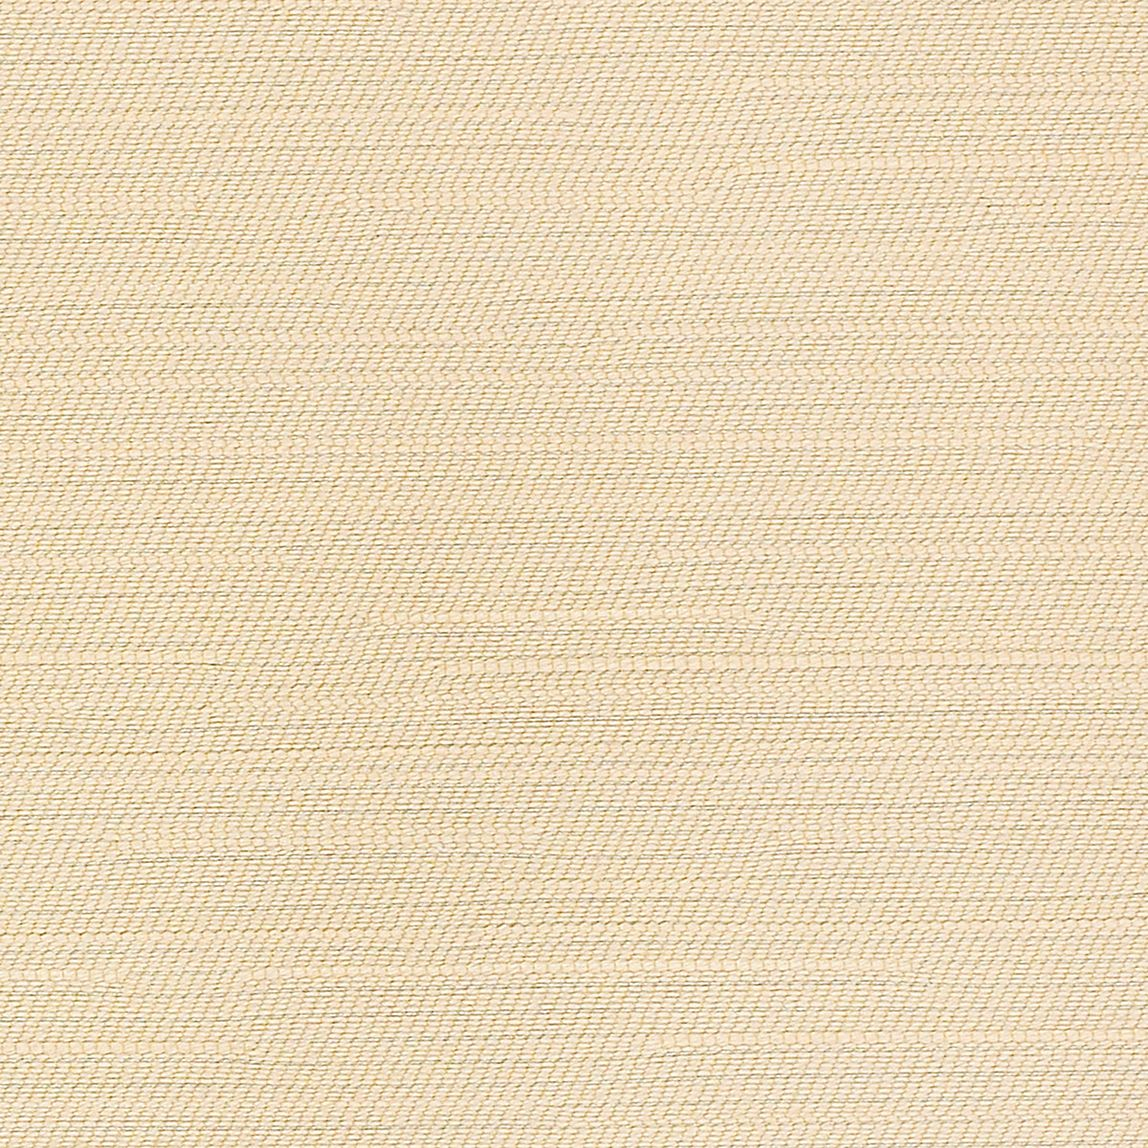 Weaving Palettes Ivory Swatch